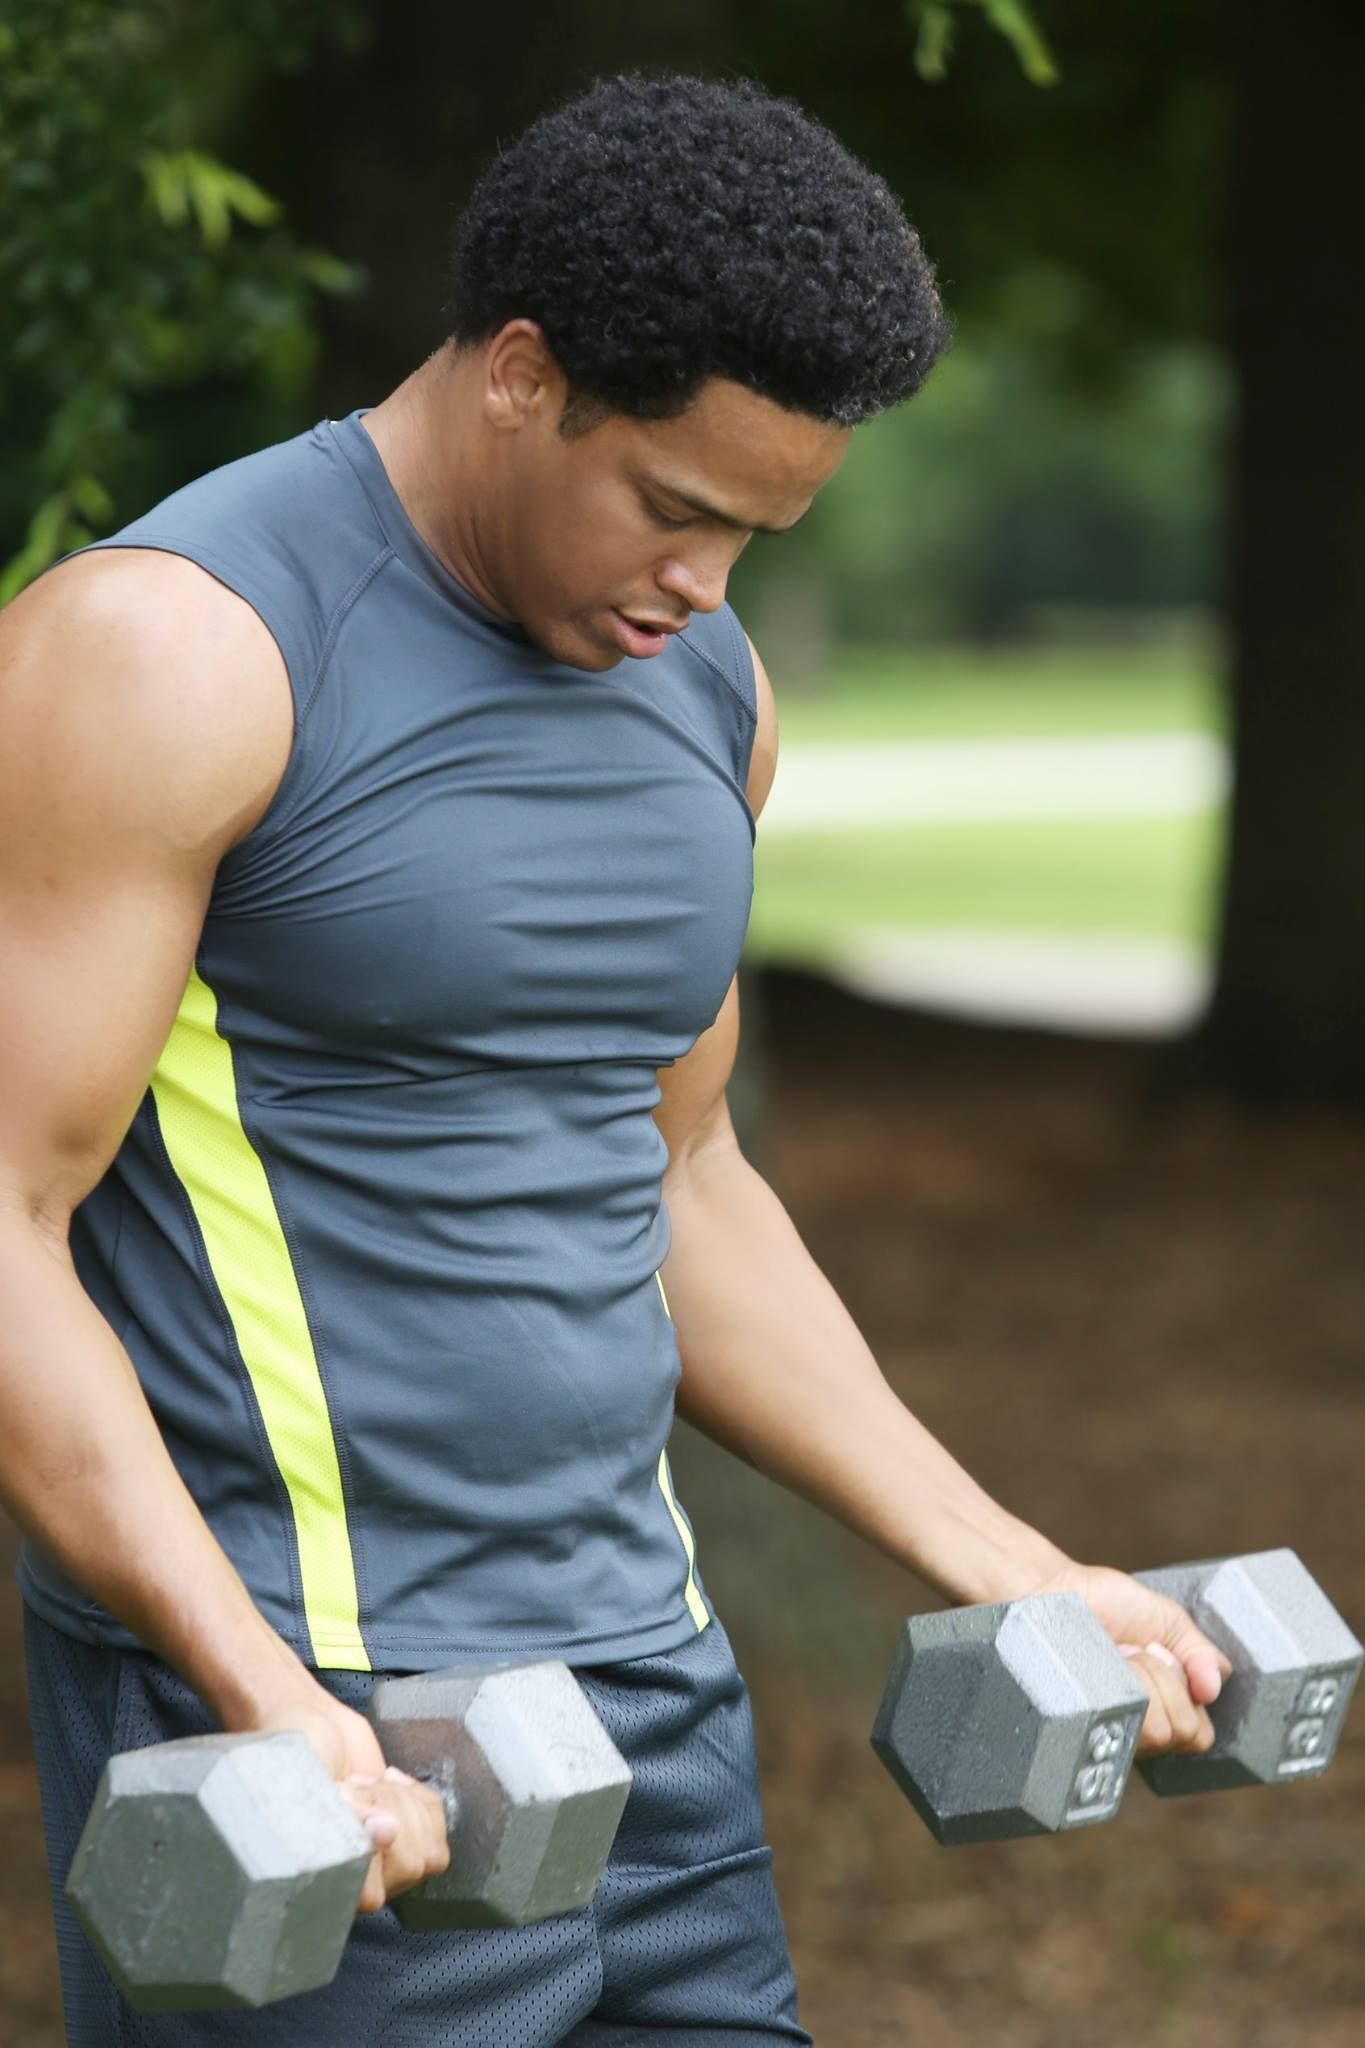 exercises that get you ripped